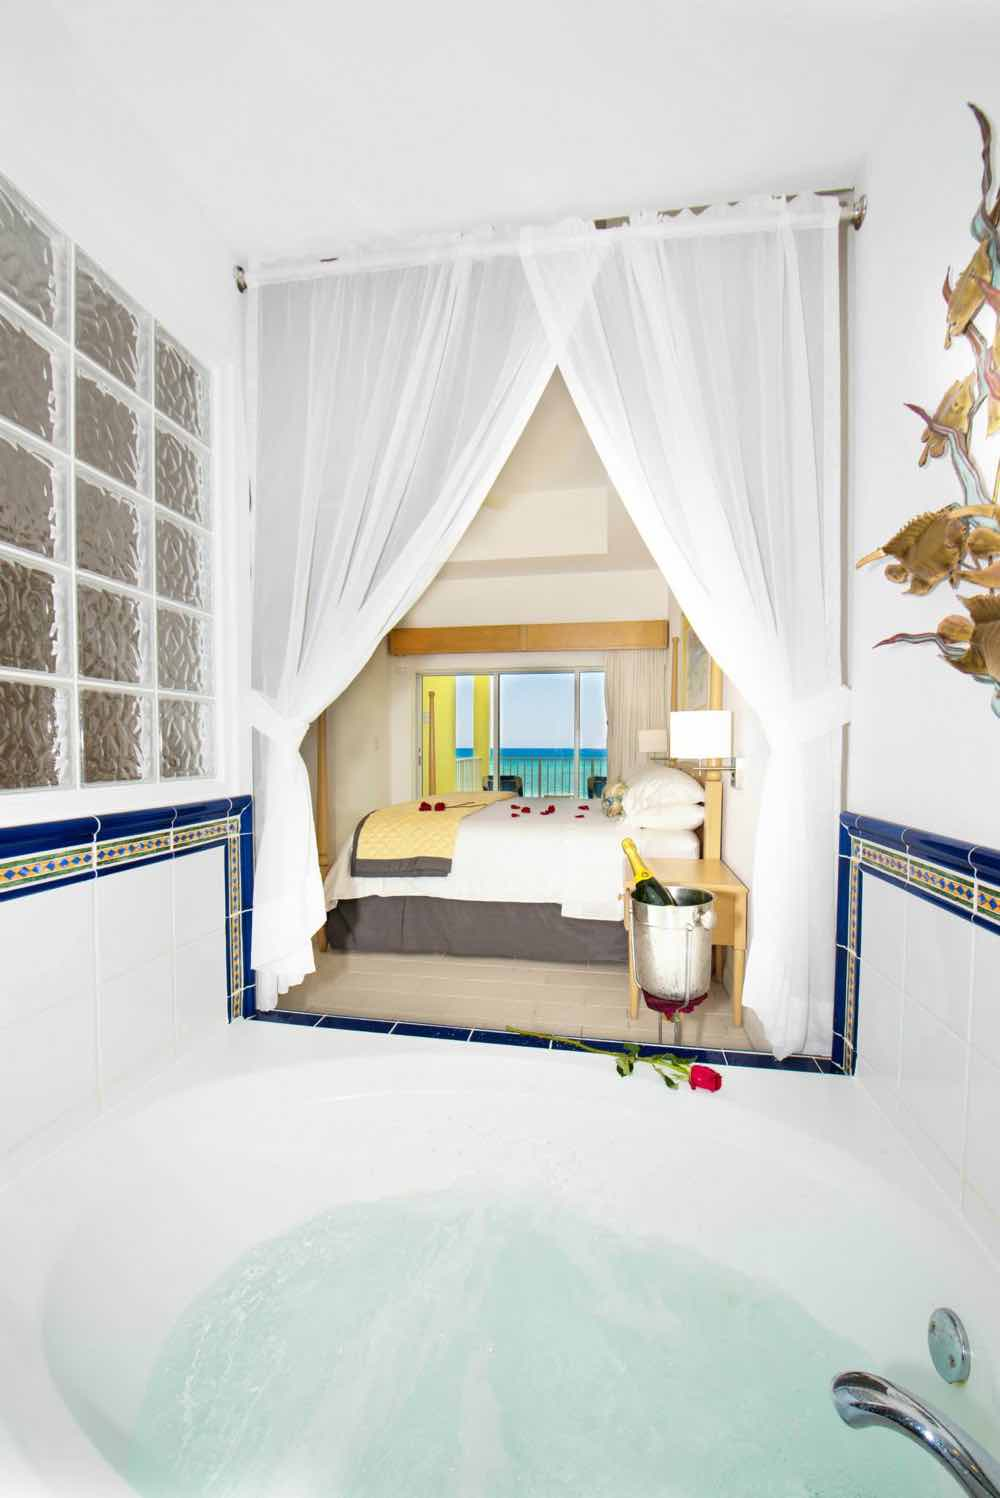 All Inclusive Wyndham Reef Resort On Cayman Islands For: Beachfront Deluxe Studio, From Photo Gallery For Wyndham